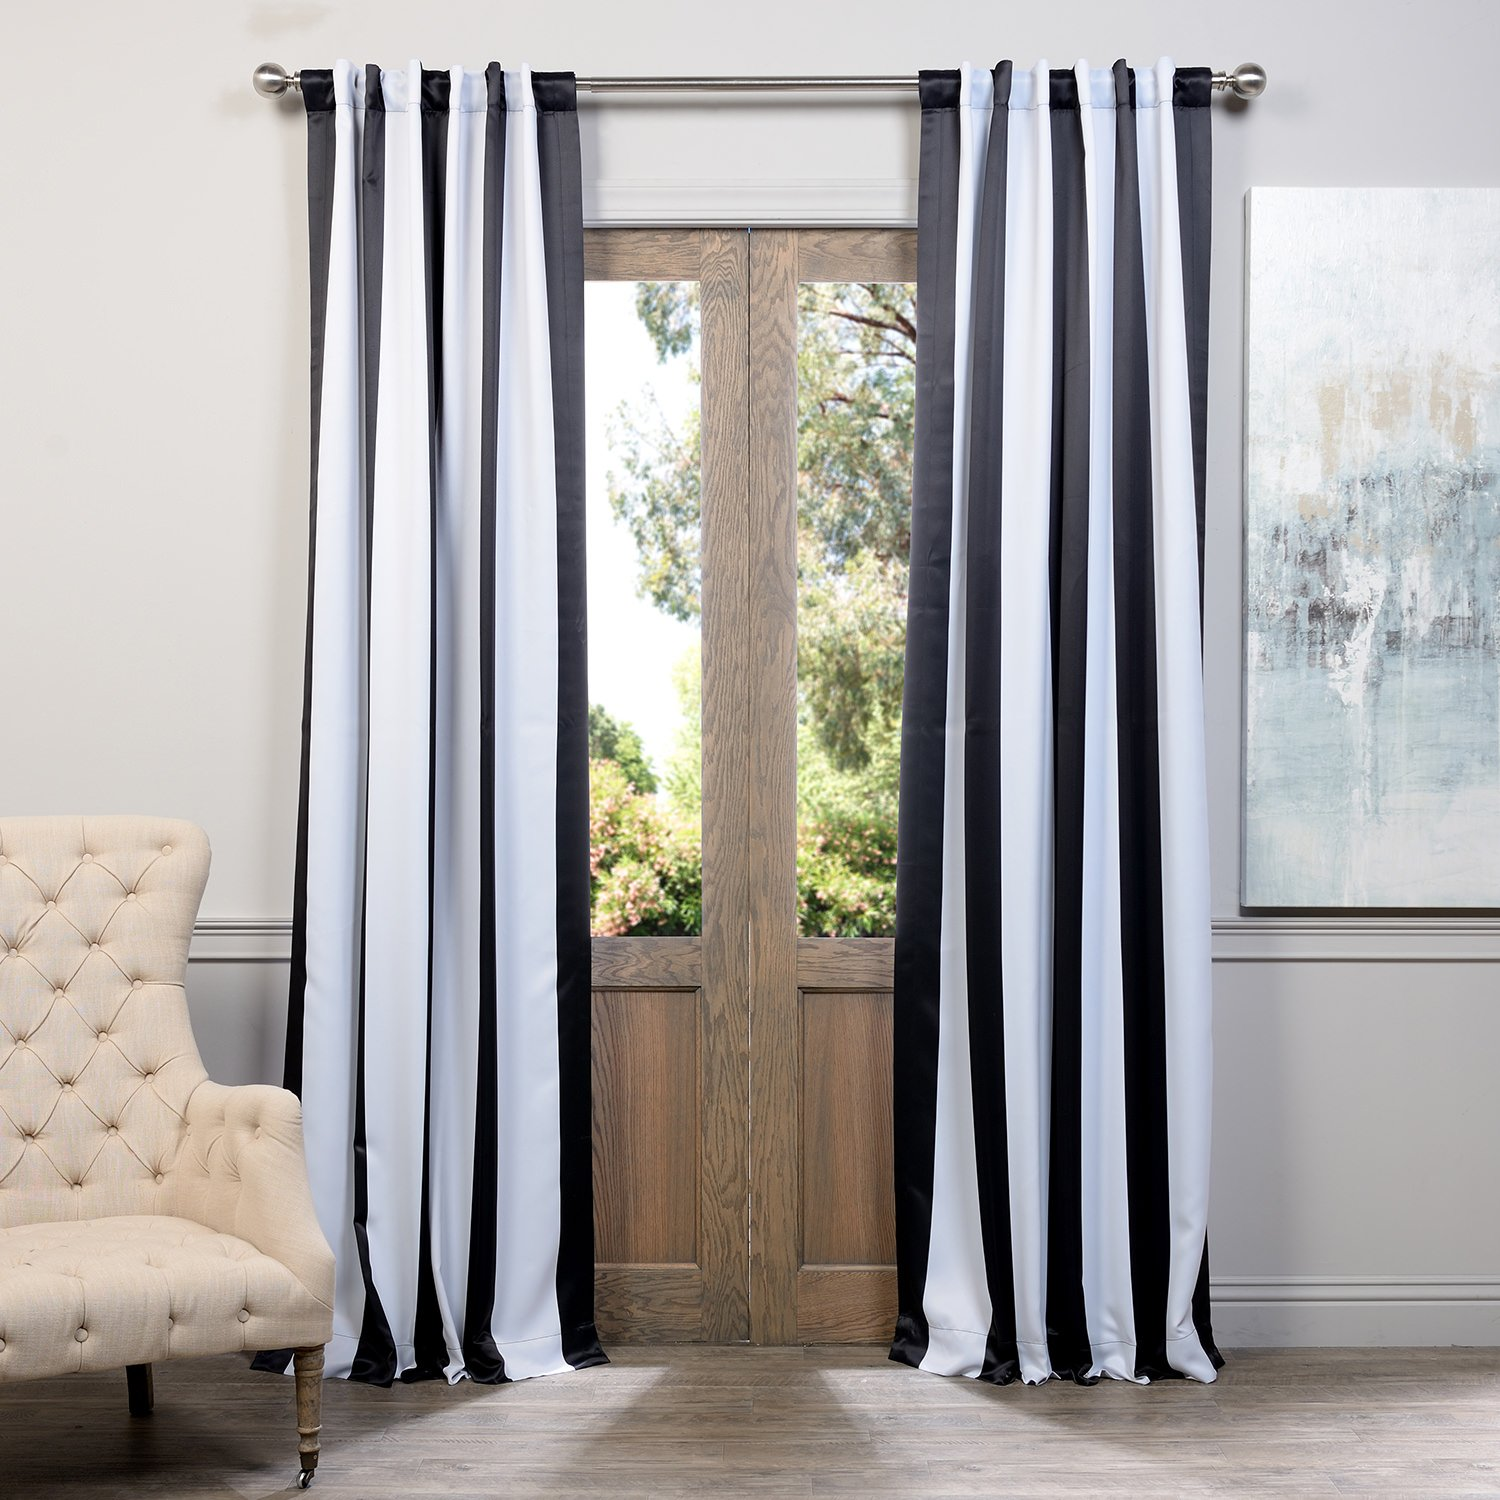 Black and white curtains - Amazon Com Half Price Drapes Boch Kc43 84 Blackout Curtain Awning Black White Stripe Home Kitchen